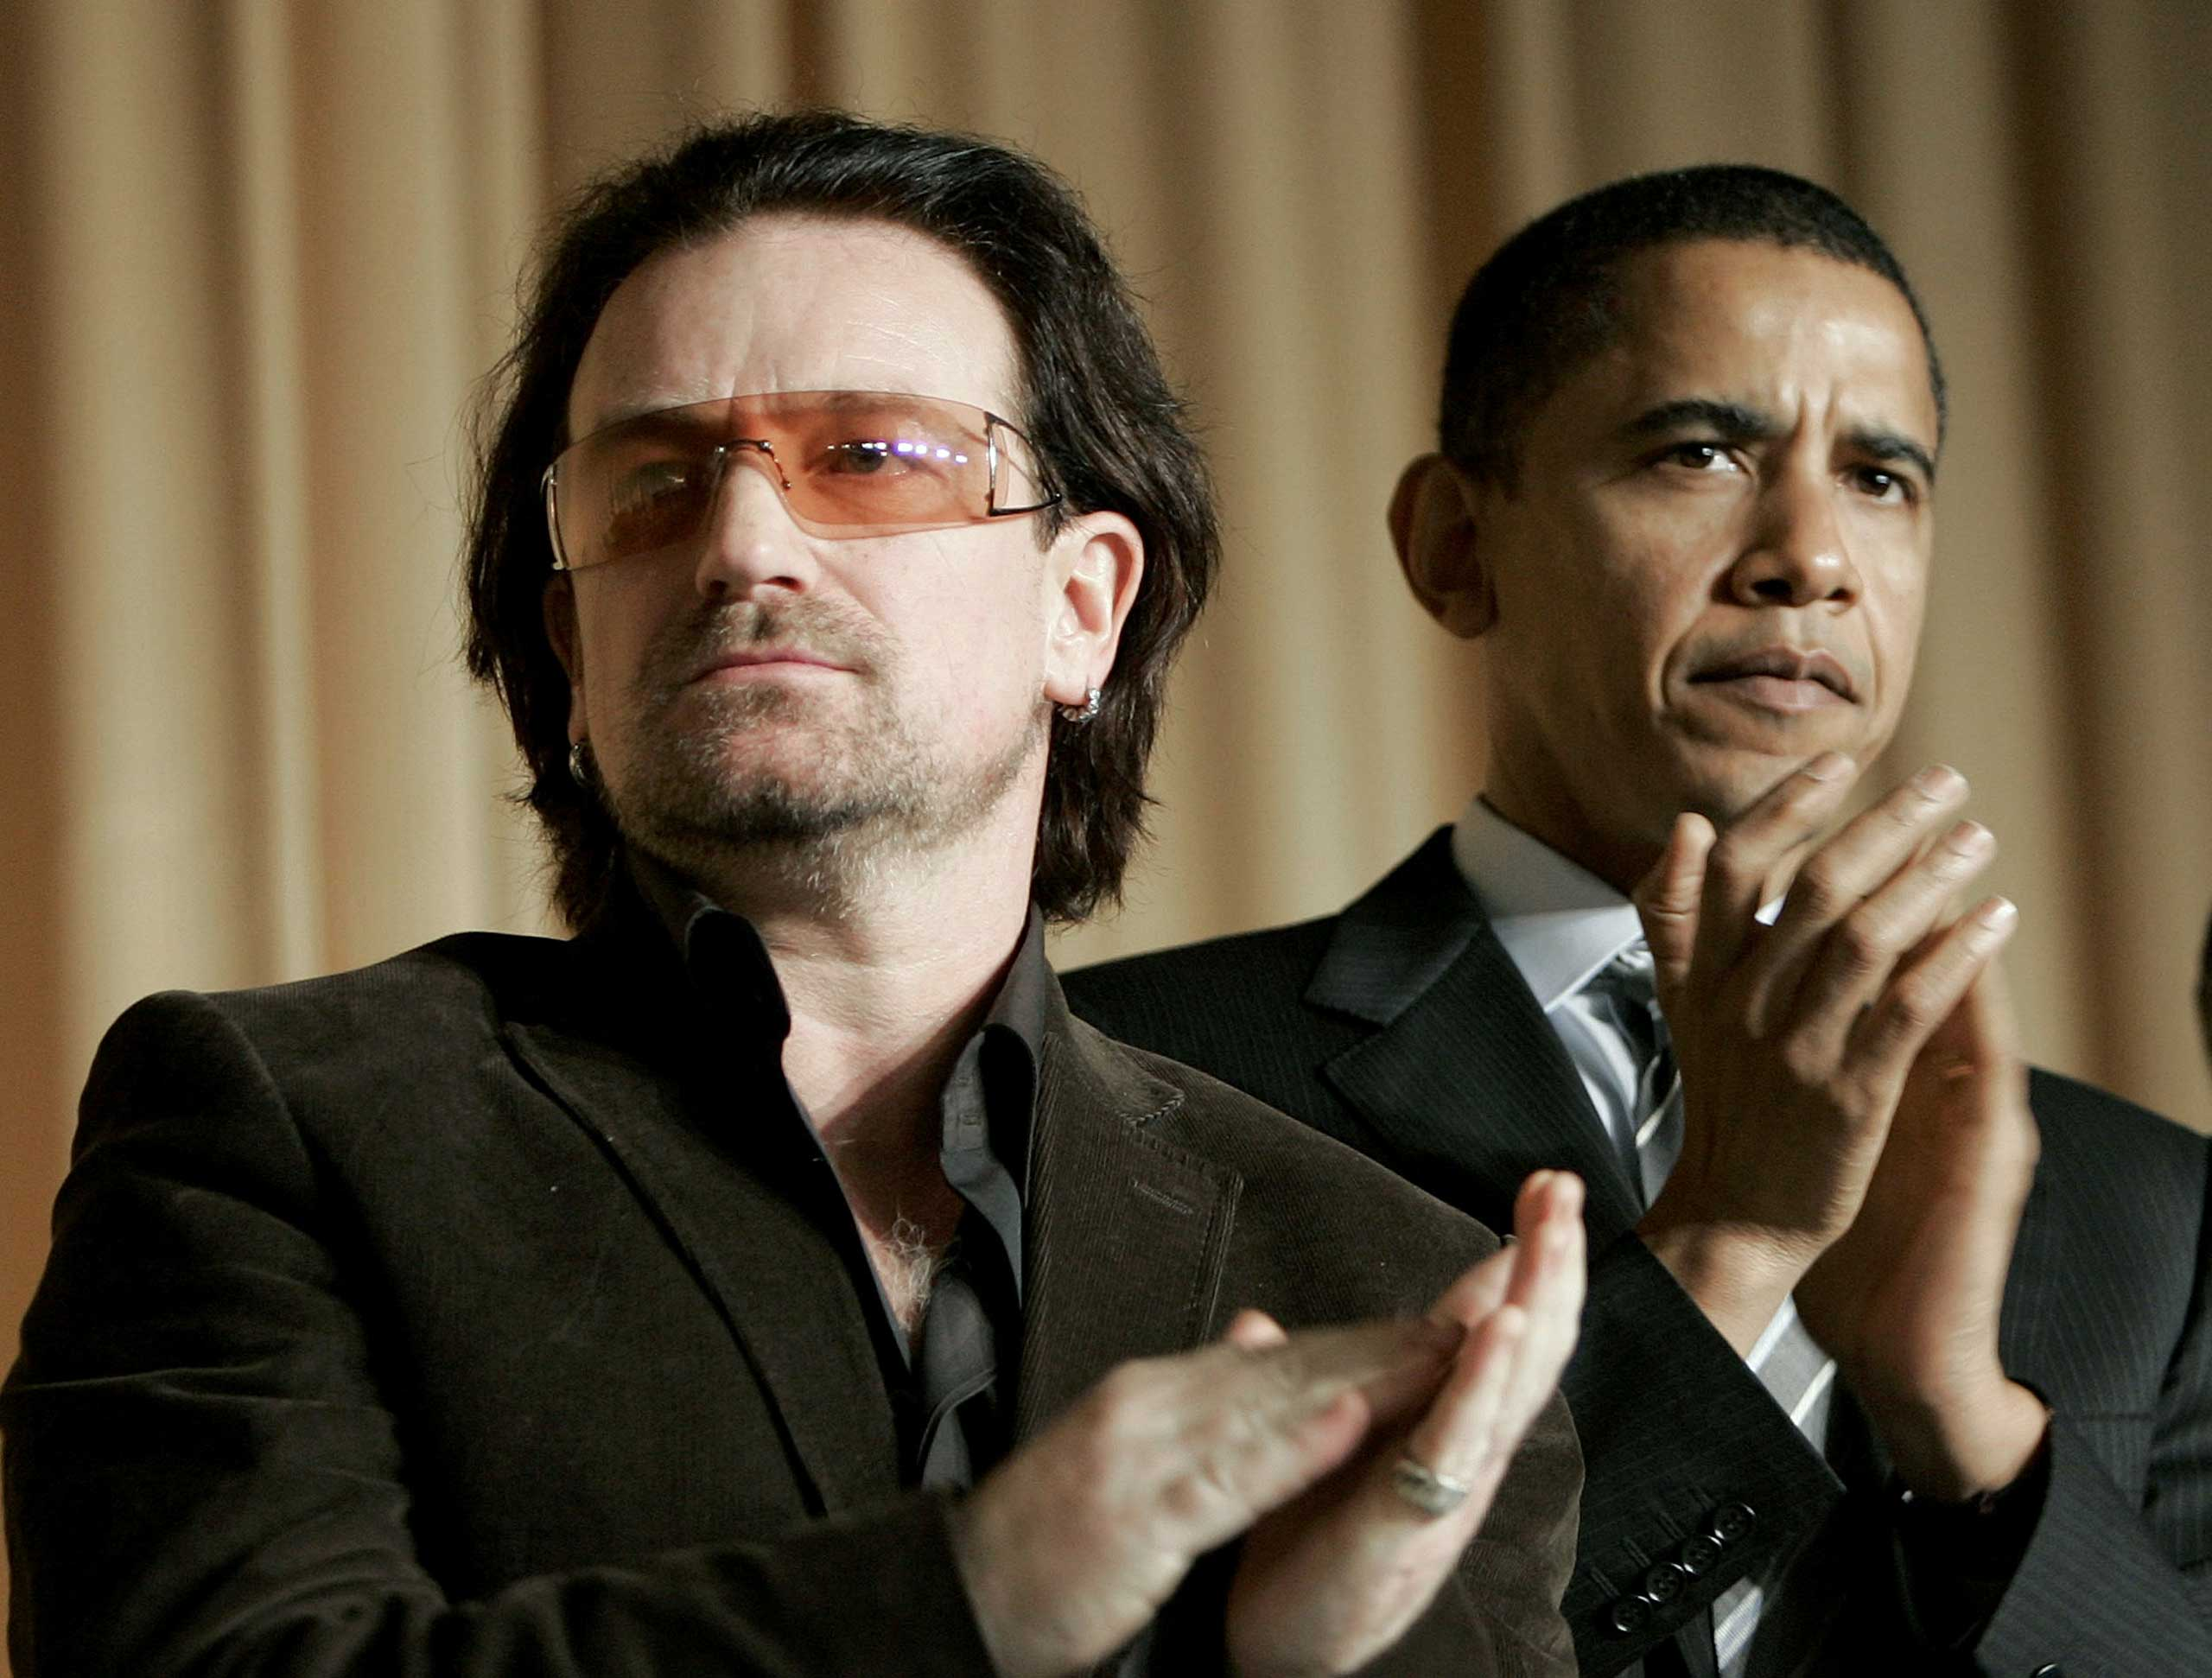 Bono was also seen with then-Sen. Barack Obama at the 2006 National Prayer Breakfast.